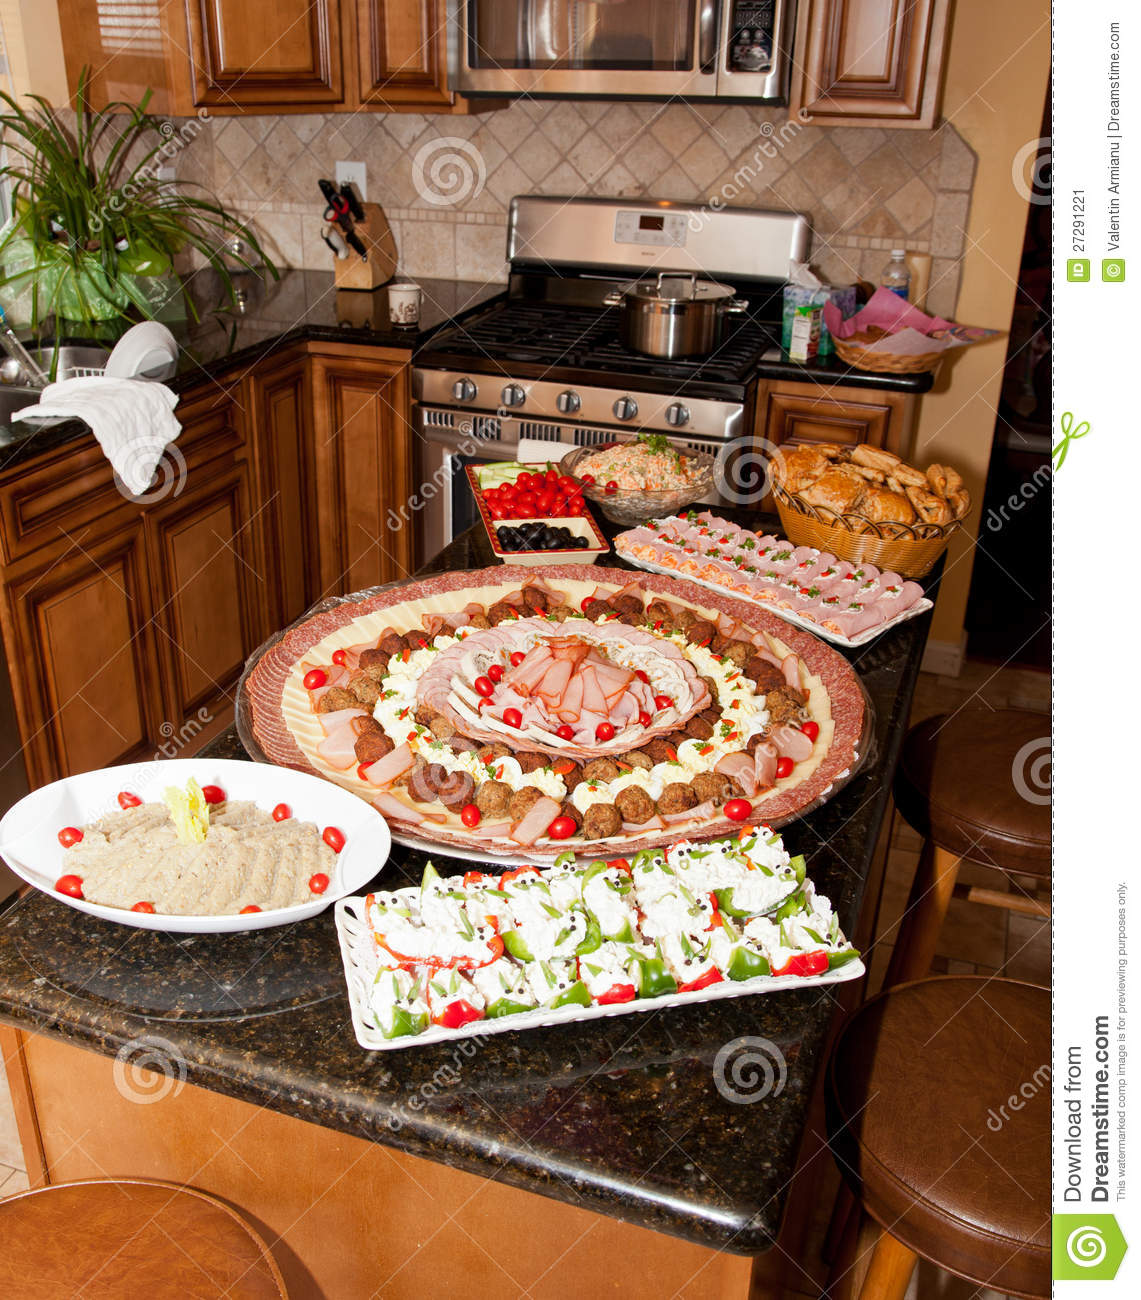 Trays Of Food In Kitchen Stock Image. Image Of Kitchenware